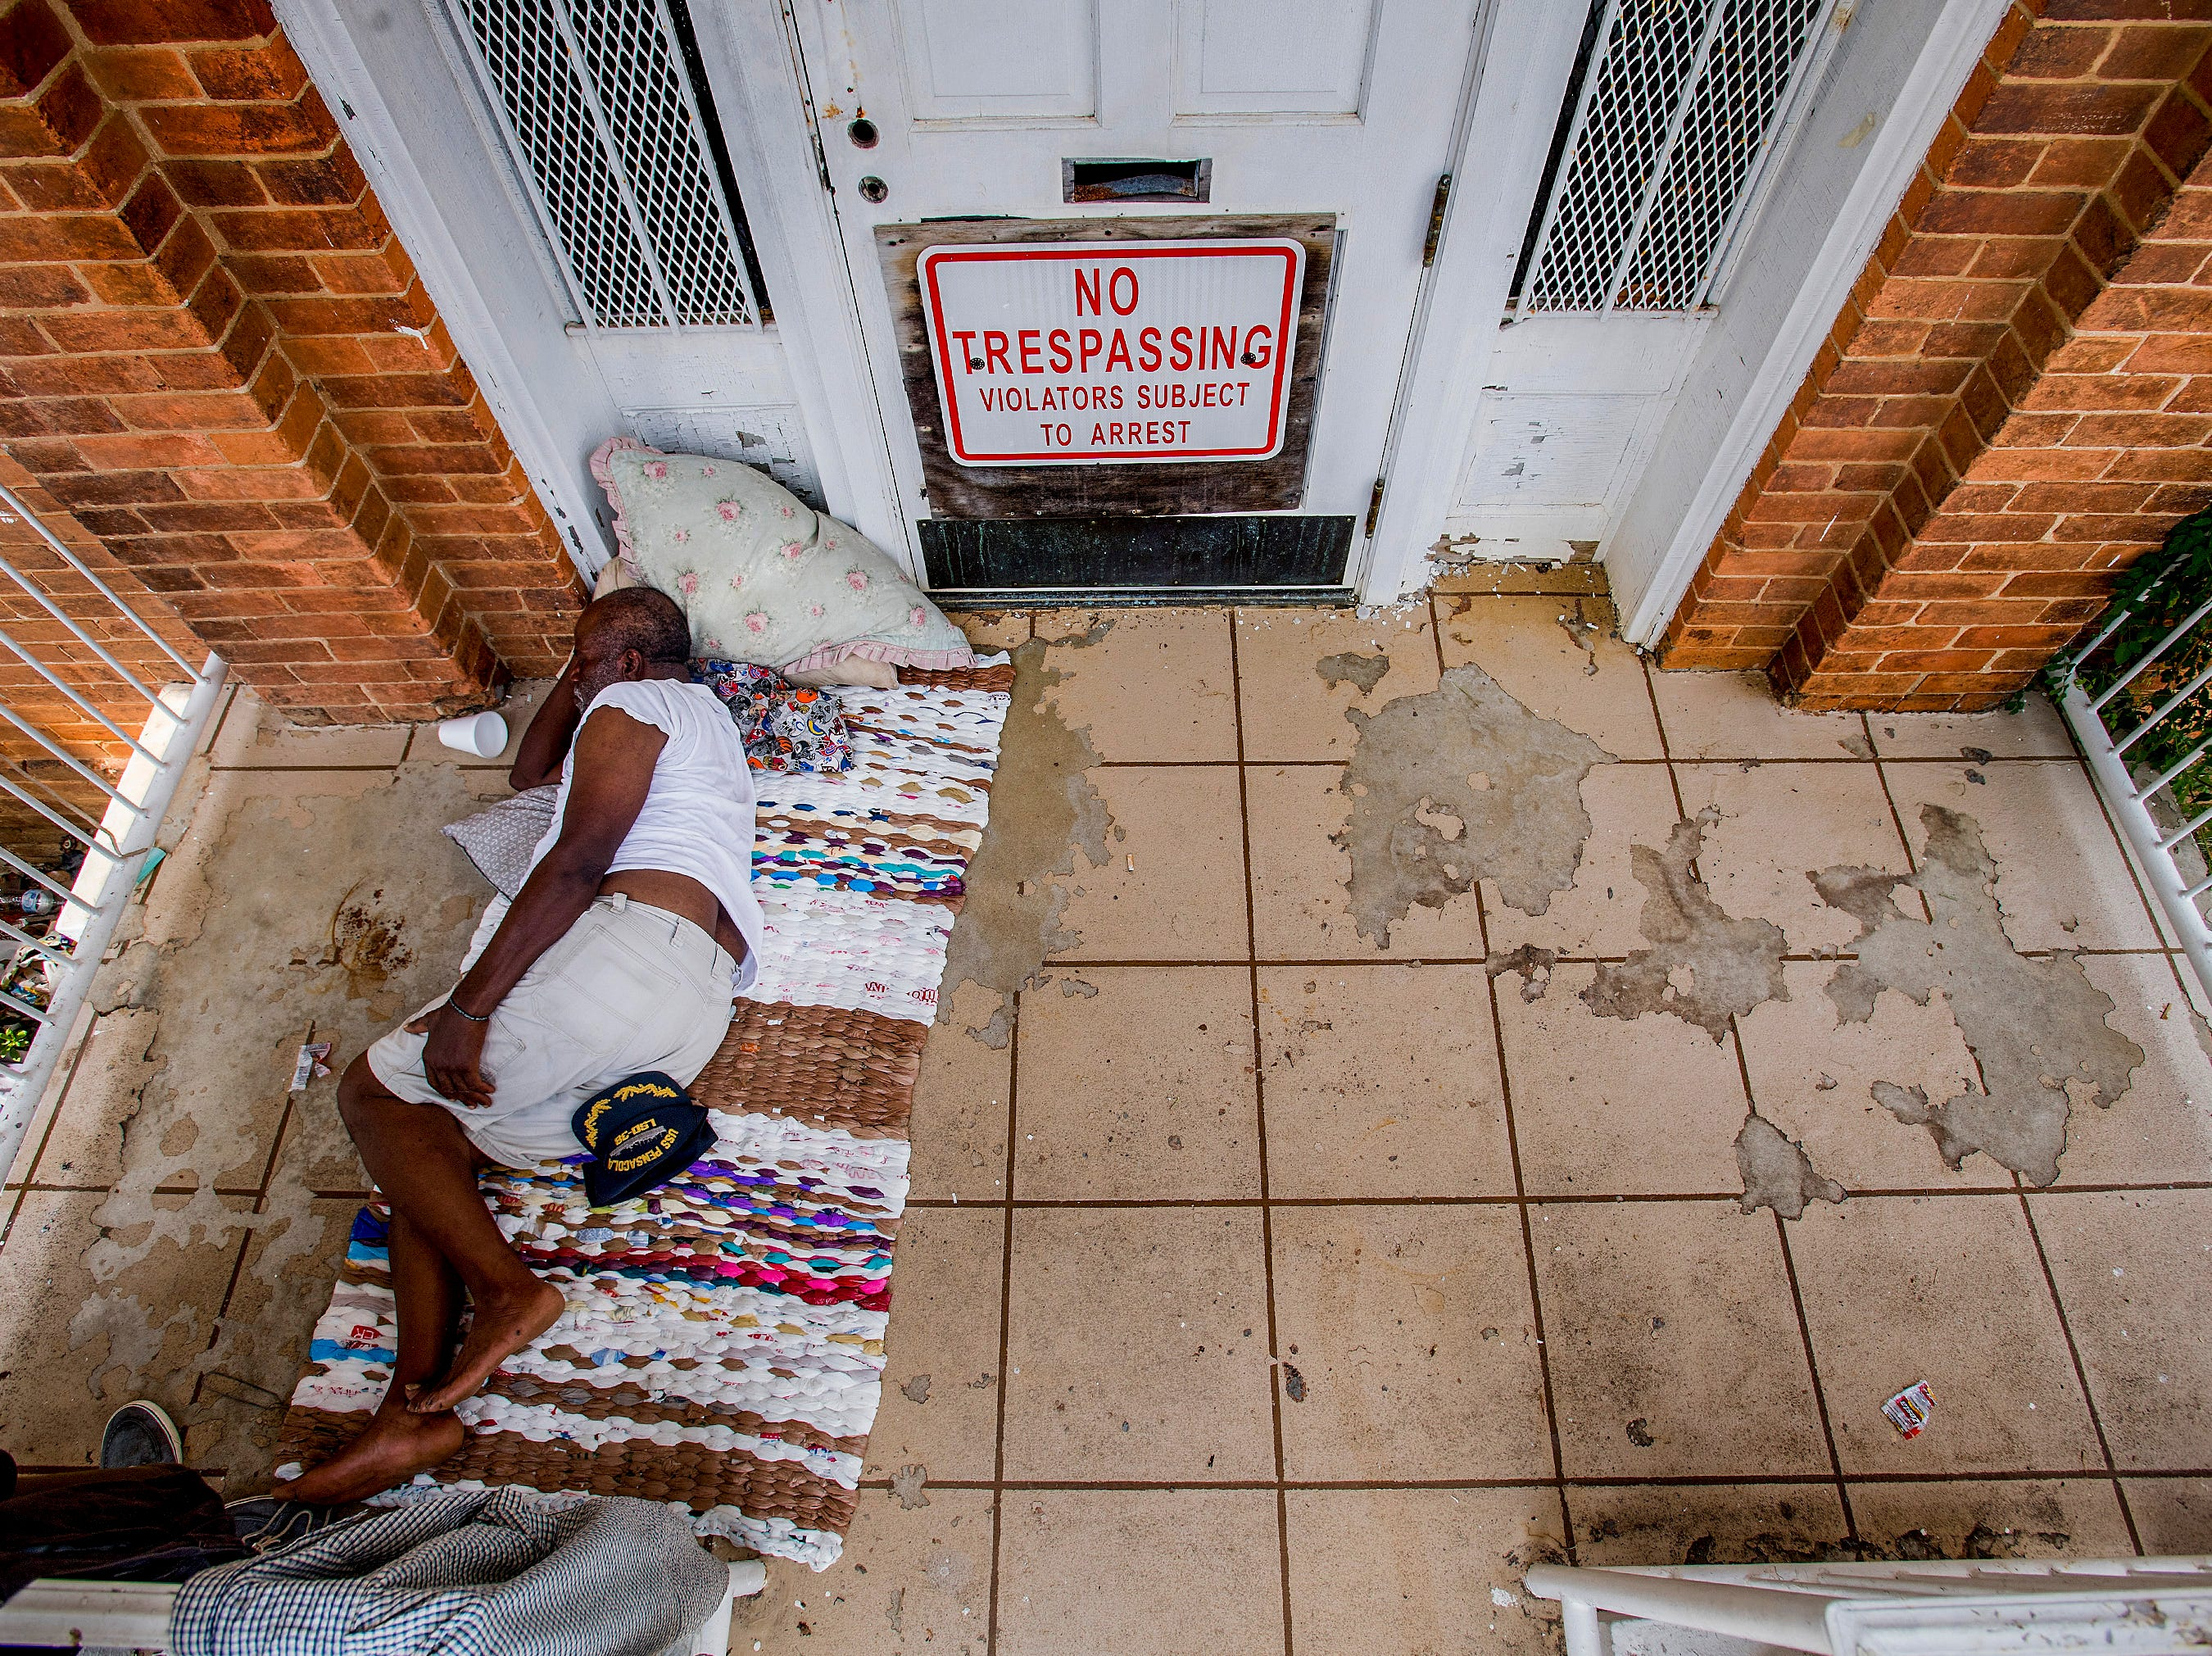 Willie Love takes a nap on the porch of the Chappell House on Maxwell Blvd in Montgomery, Ala., on Thursday July 19, 2018. Several people are sleeping on the porches of the historic home near the Salvation Army shelter.